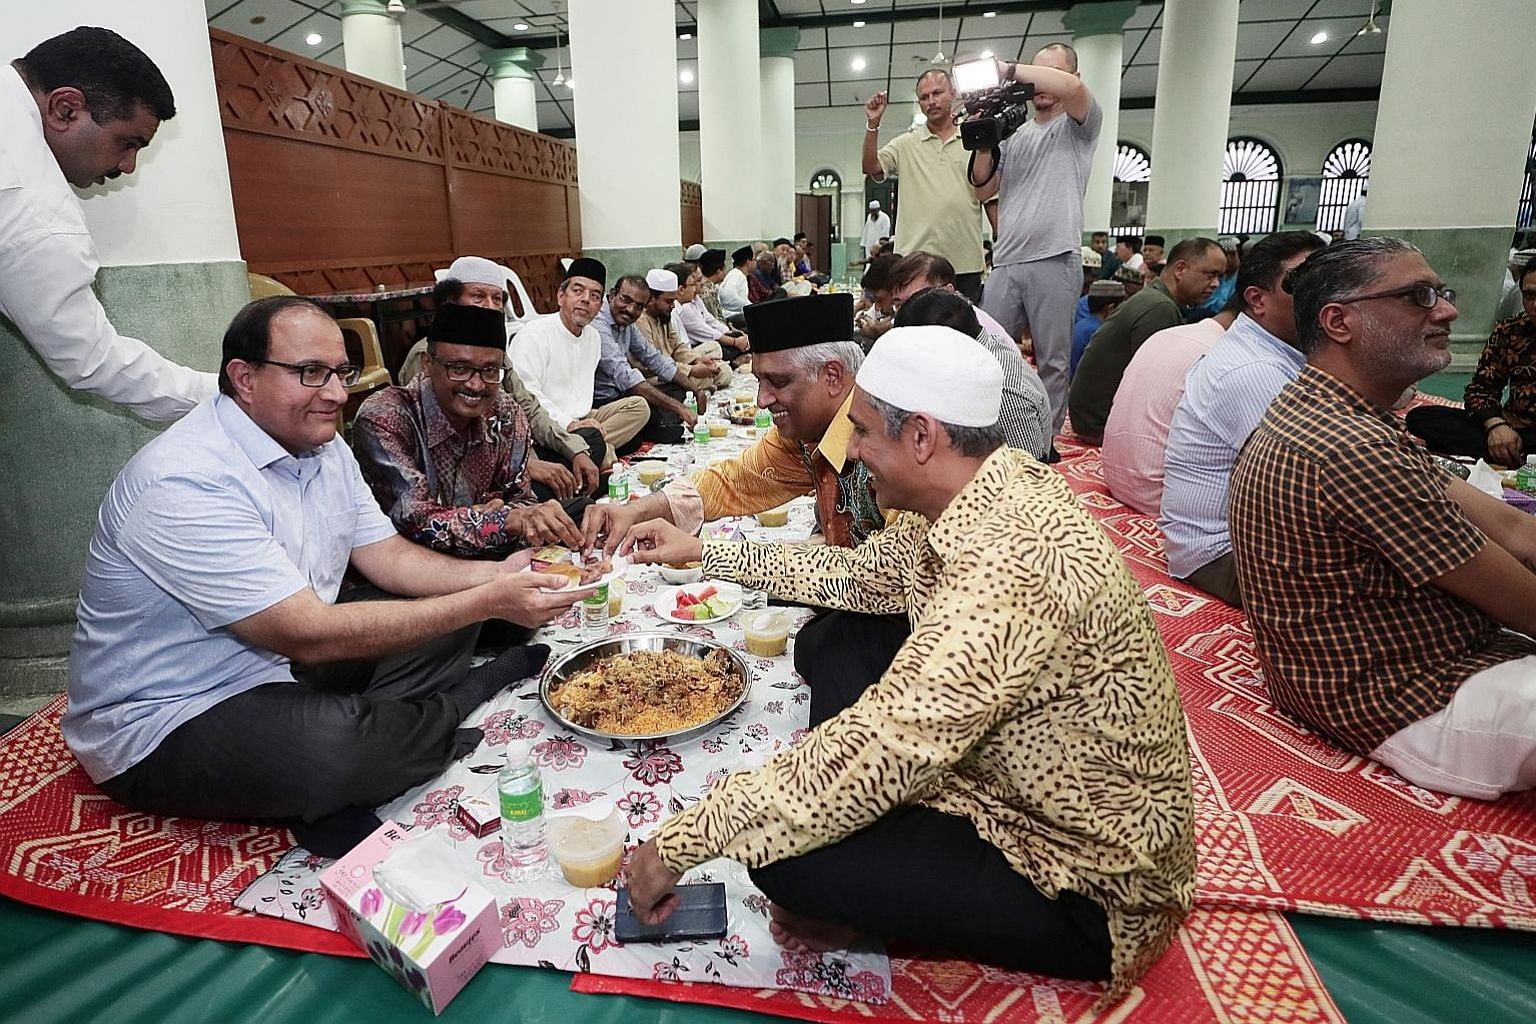 Minister for Communications and Information S. Iswaran (left) at an iftar, or break-fast session, at the Masjid Jamae Chulia in South Bridge Road yesterday. Community and business leaders, as well as people of different faiths, attended the event, co